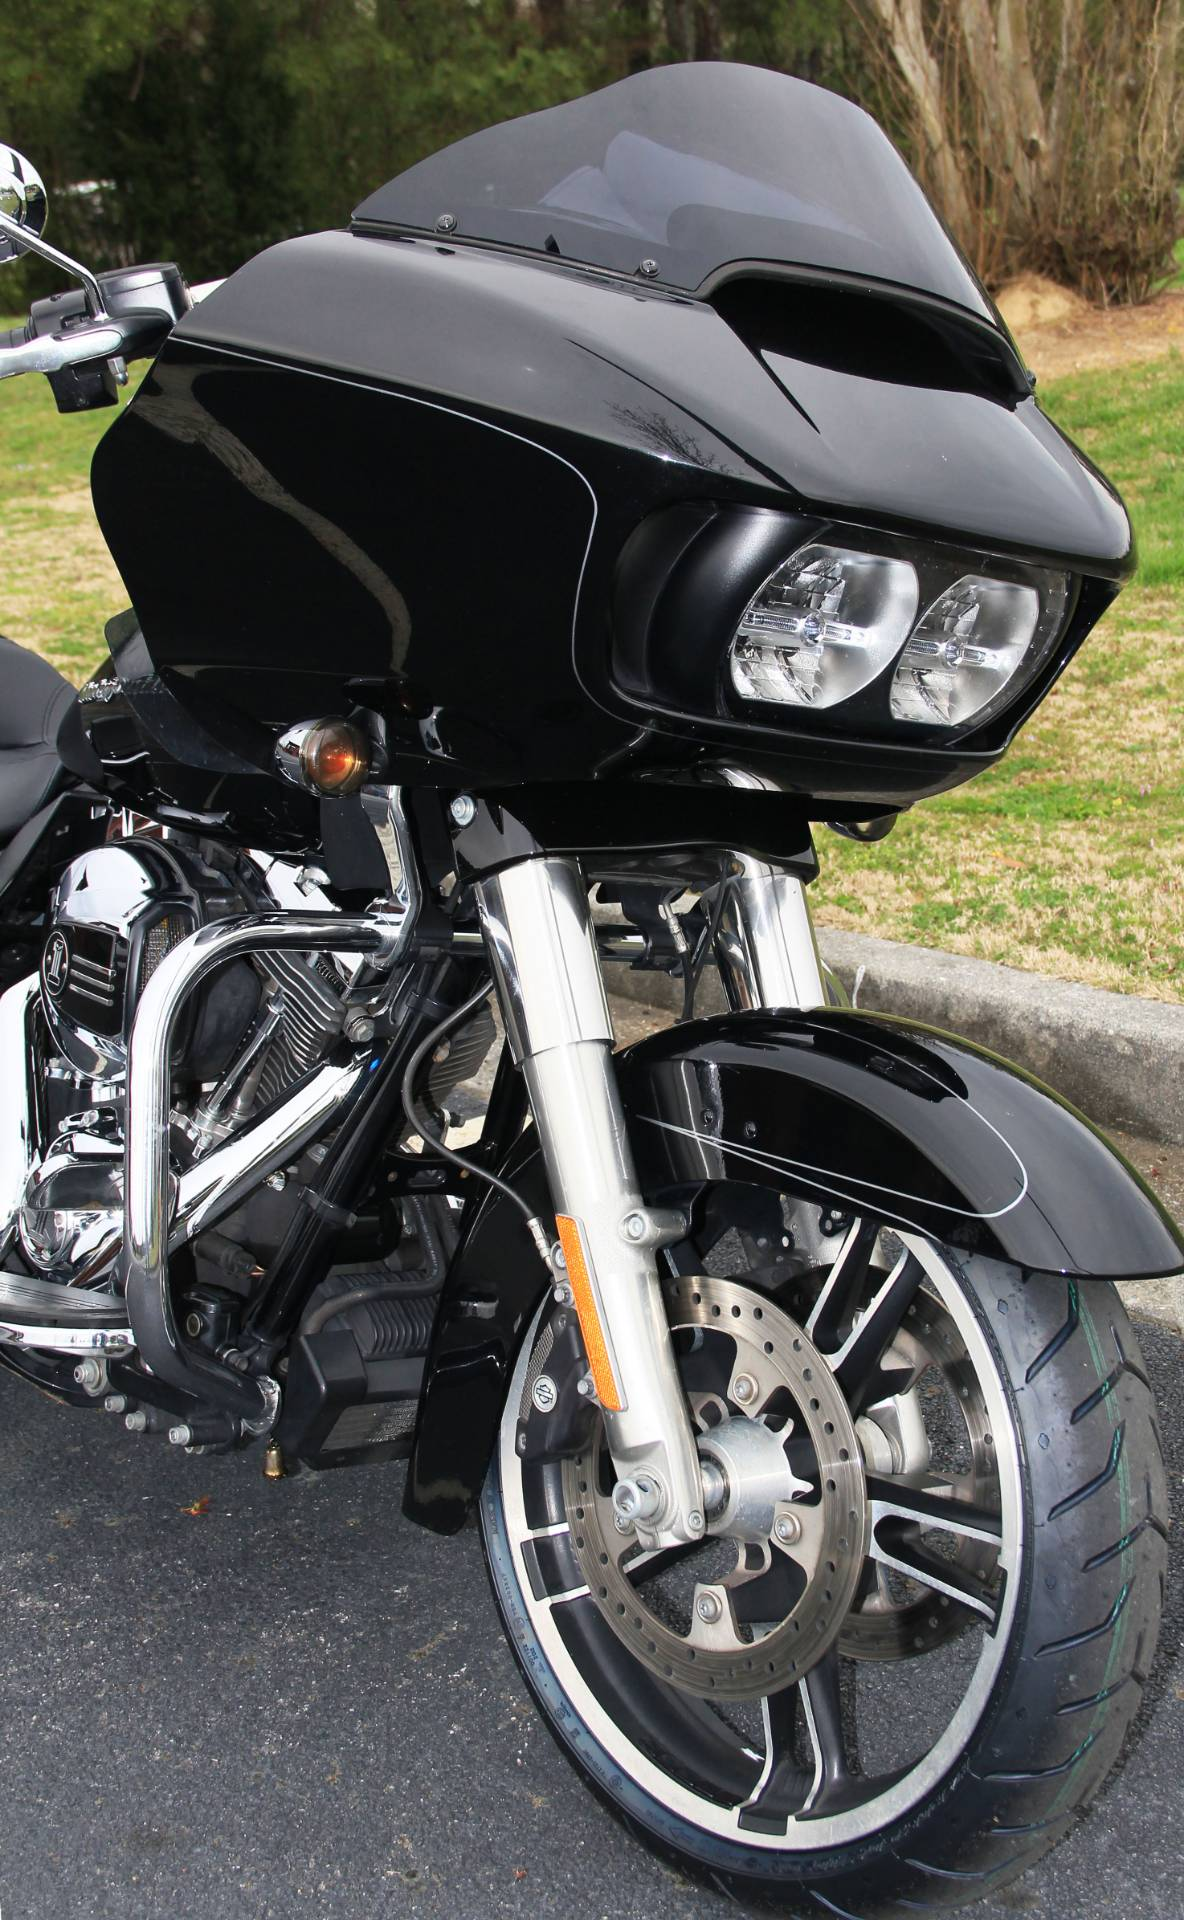 2015 Harley-Davidson Road Glide Special in Cartersville, Georgia - Photo 3